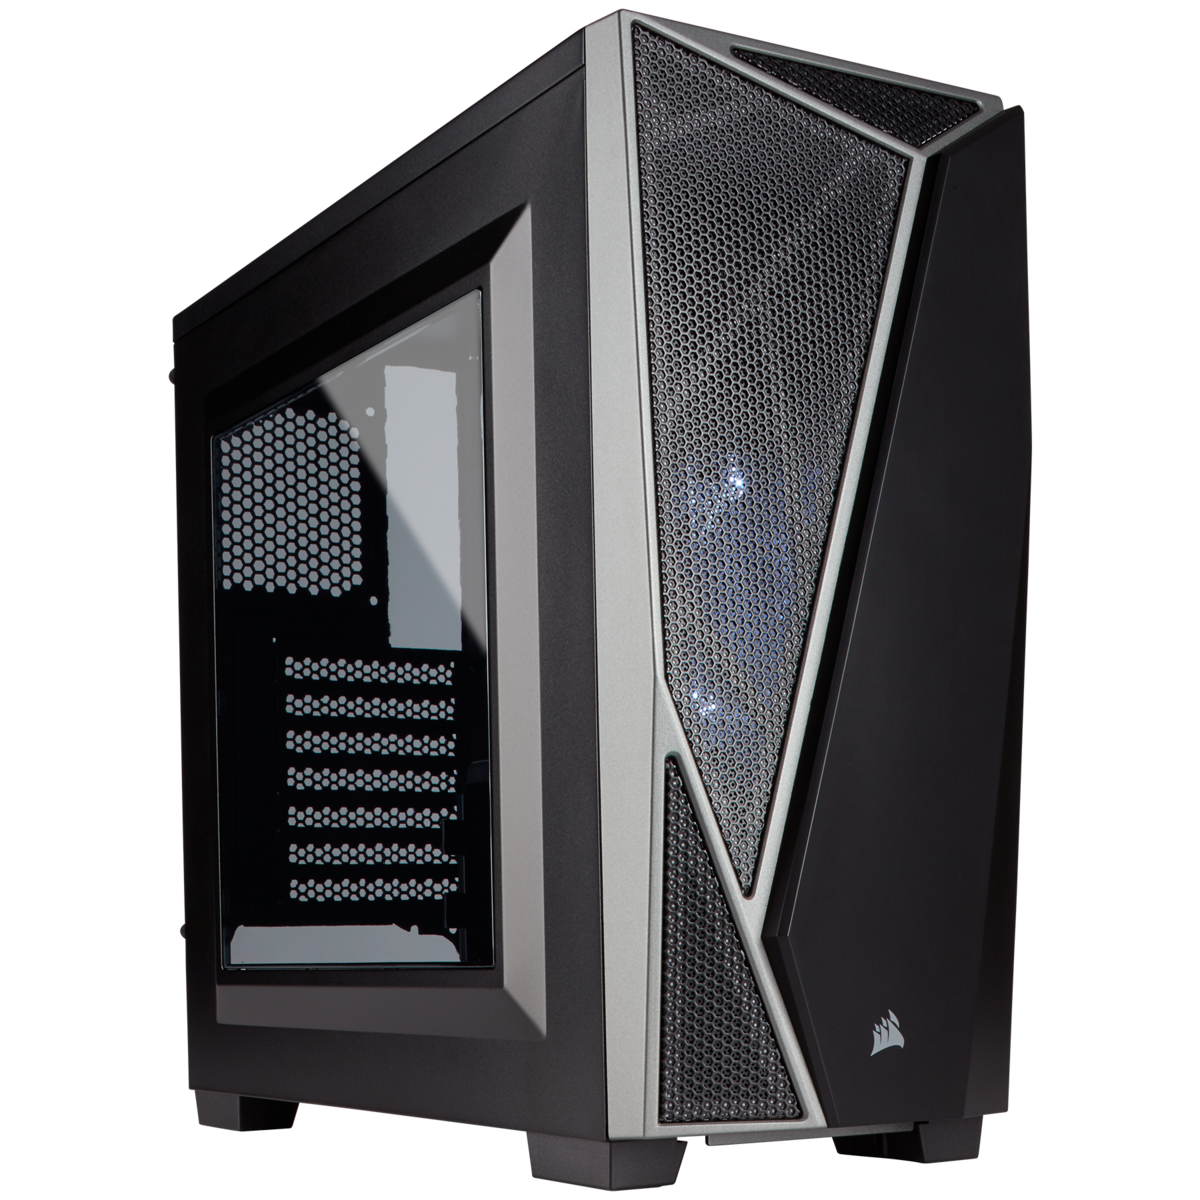 Boîtier Corsair gaming moyen-tour Carbide Series™ SPEC-04 — Noir/Gris